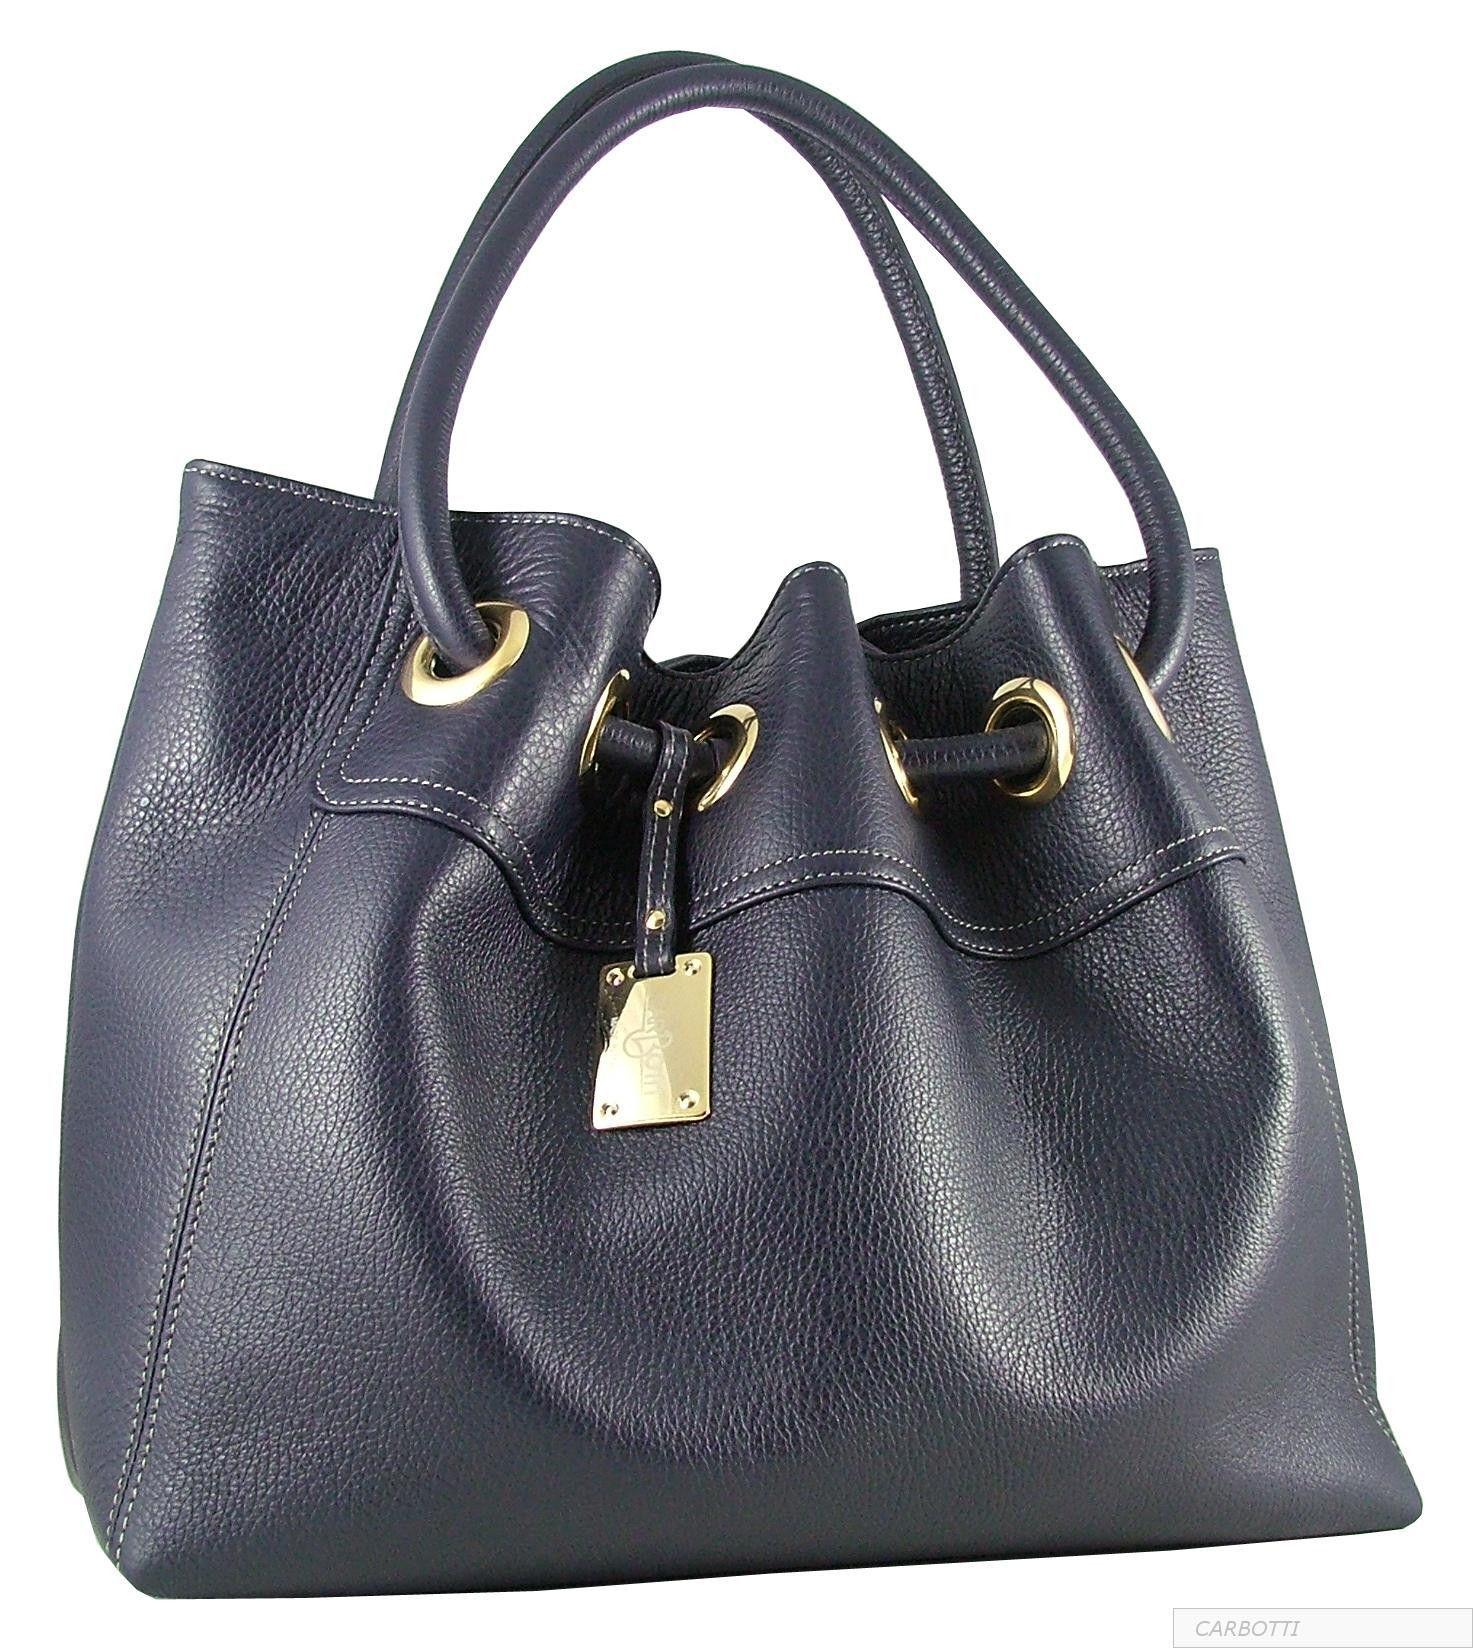 Blue Handbag In Italian Leather By Carbotti